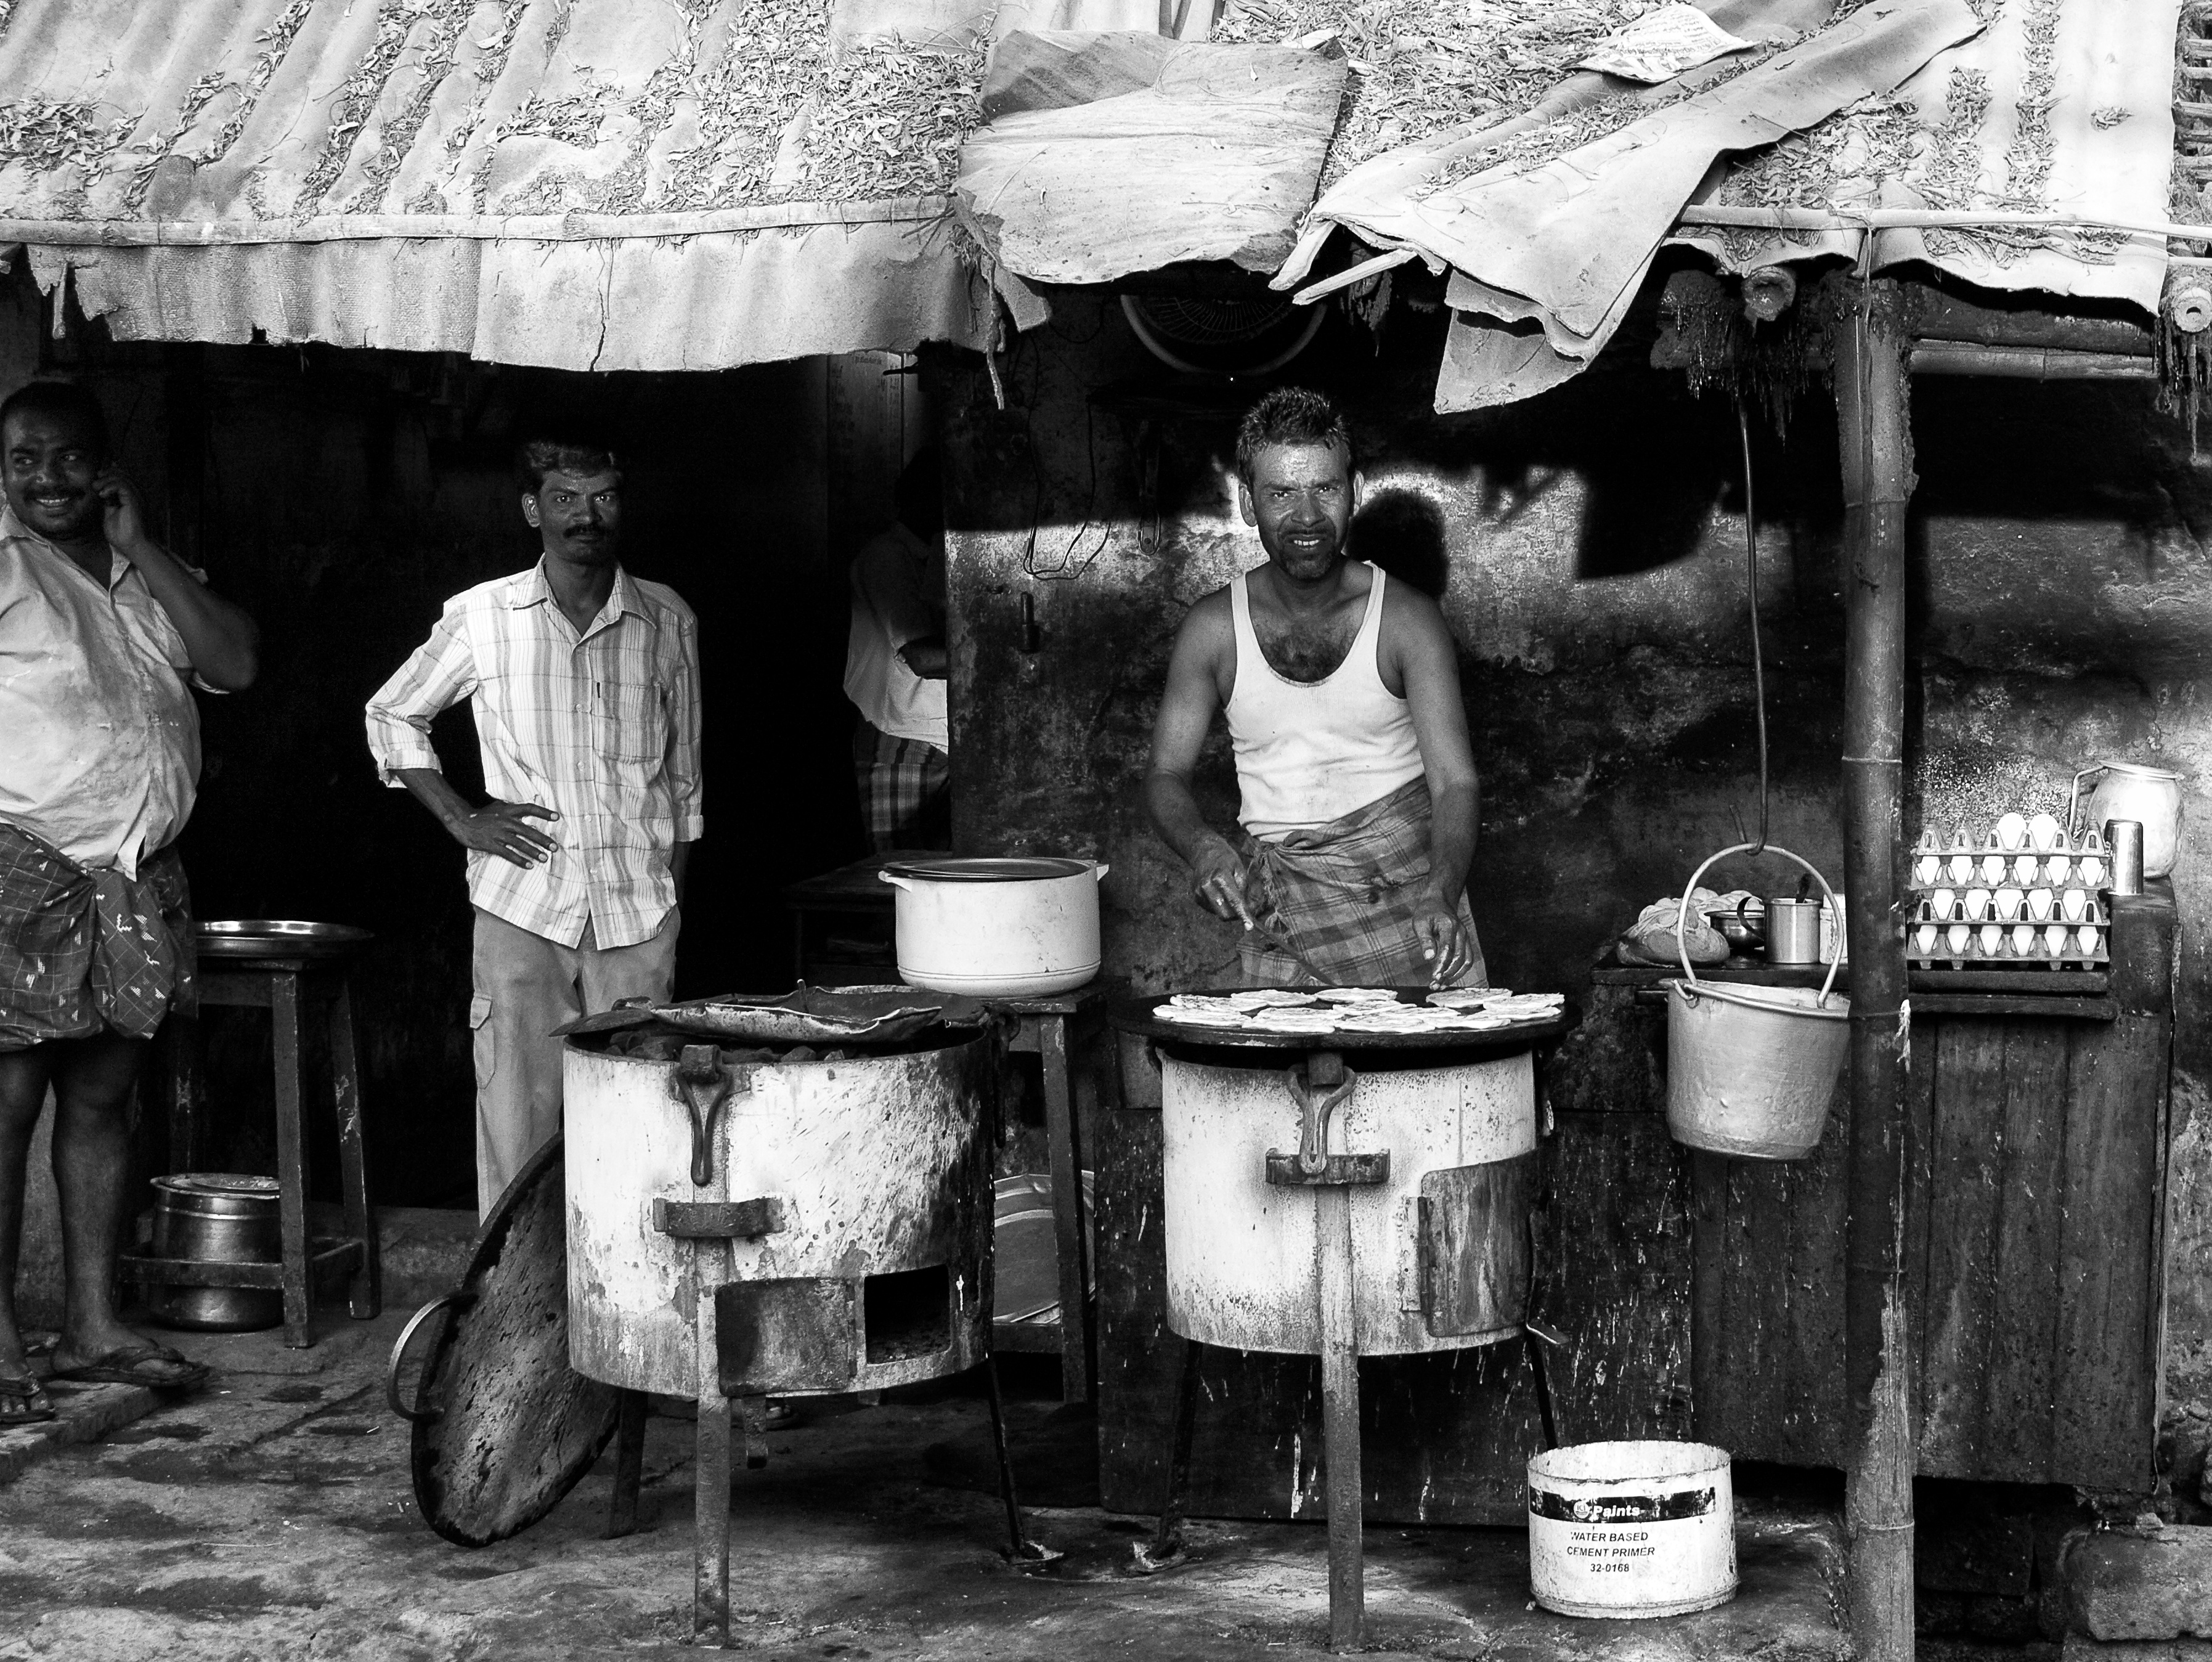 A cook frying parottas in the charcoal stove at a roadside food-stall. Virudhunagar, India.